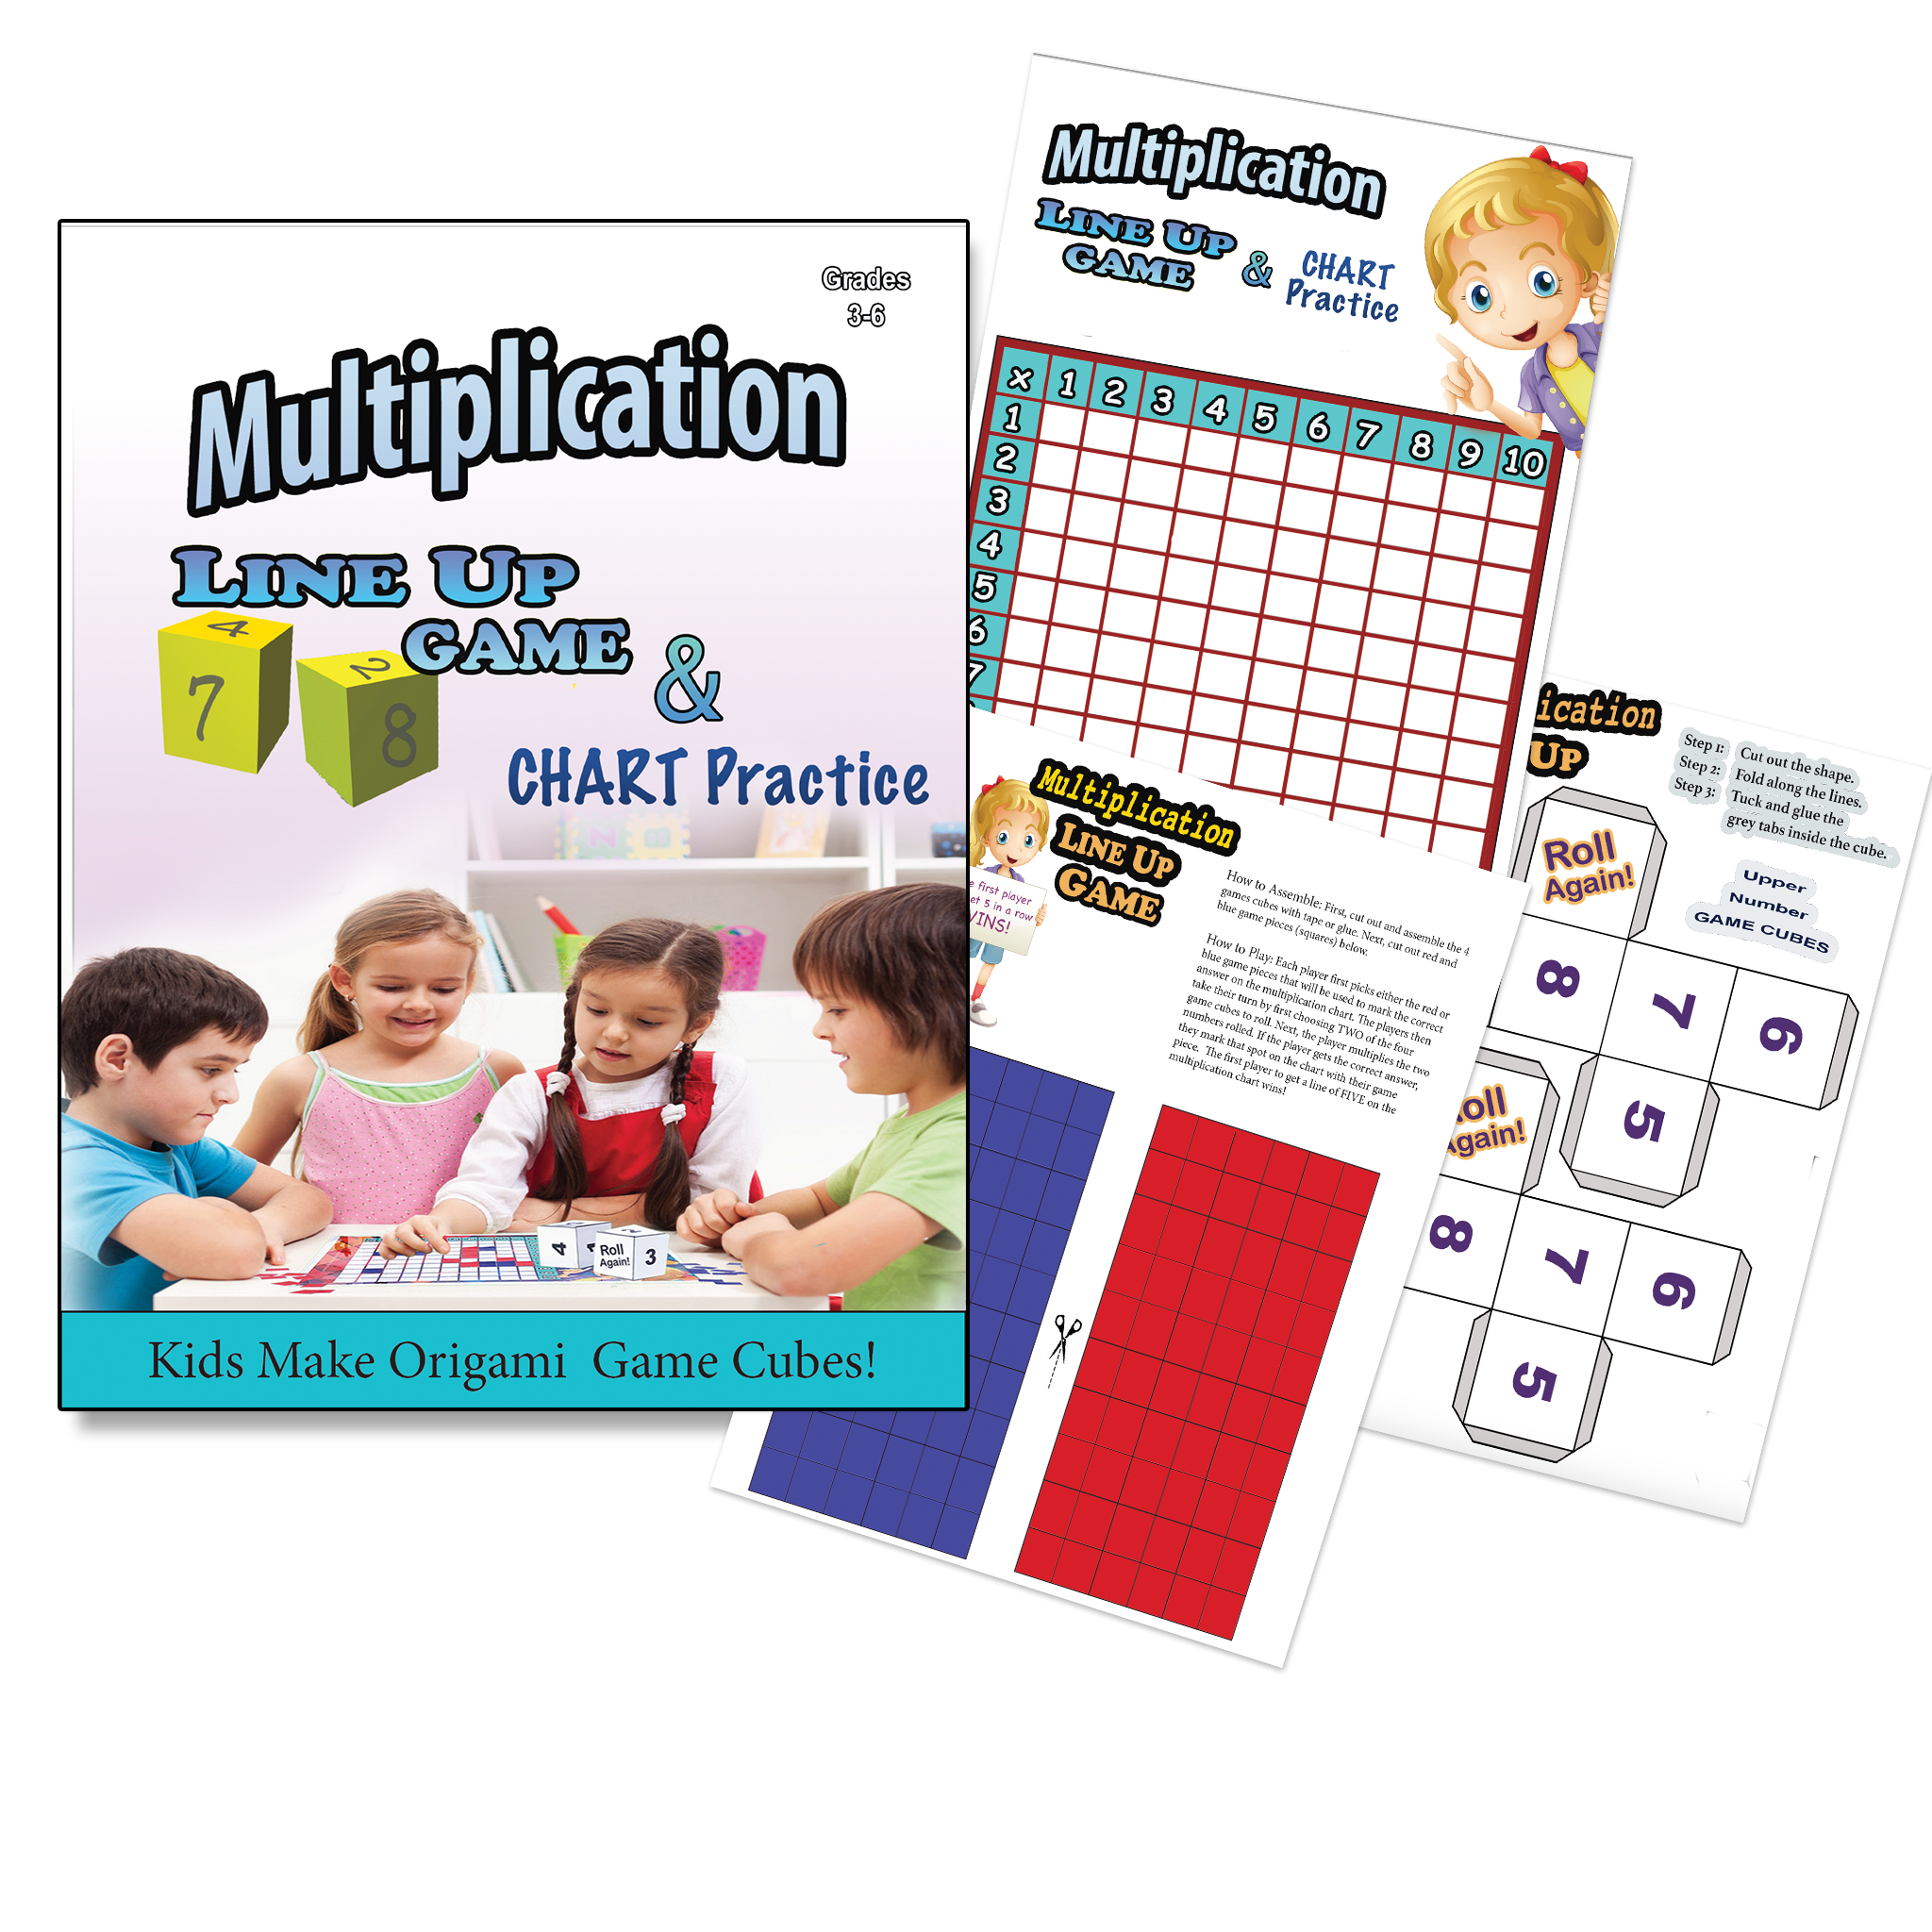 Multiplication Chart - Printable Game & Practice